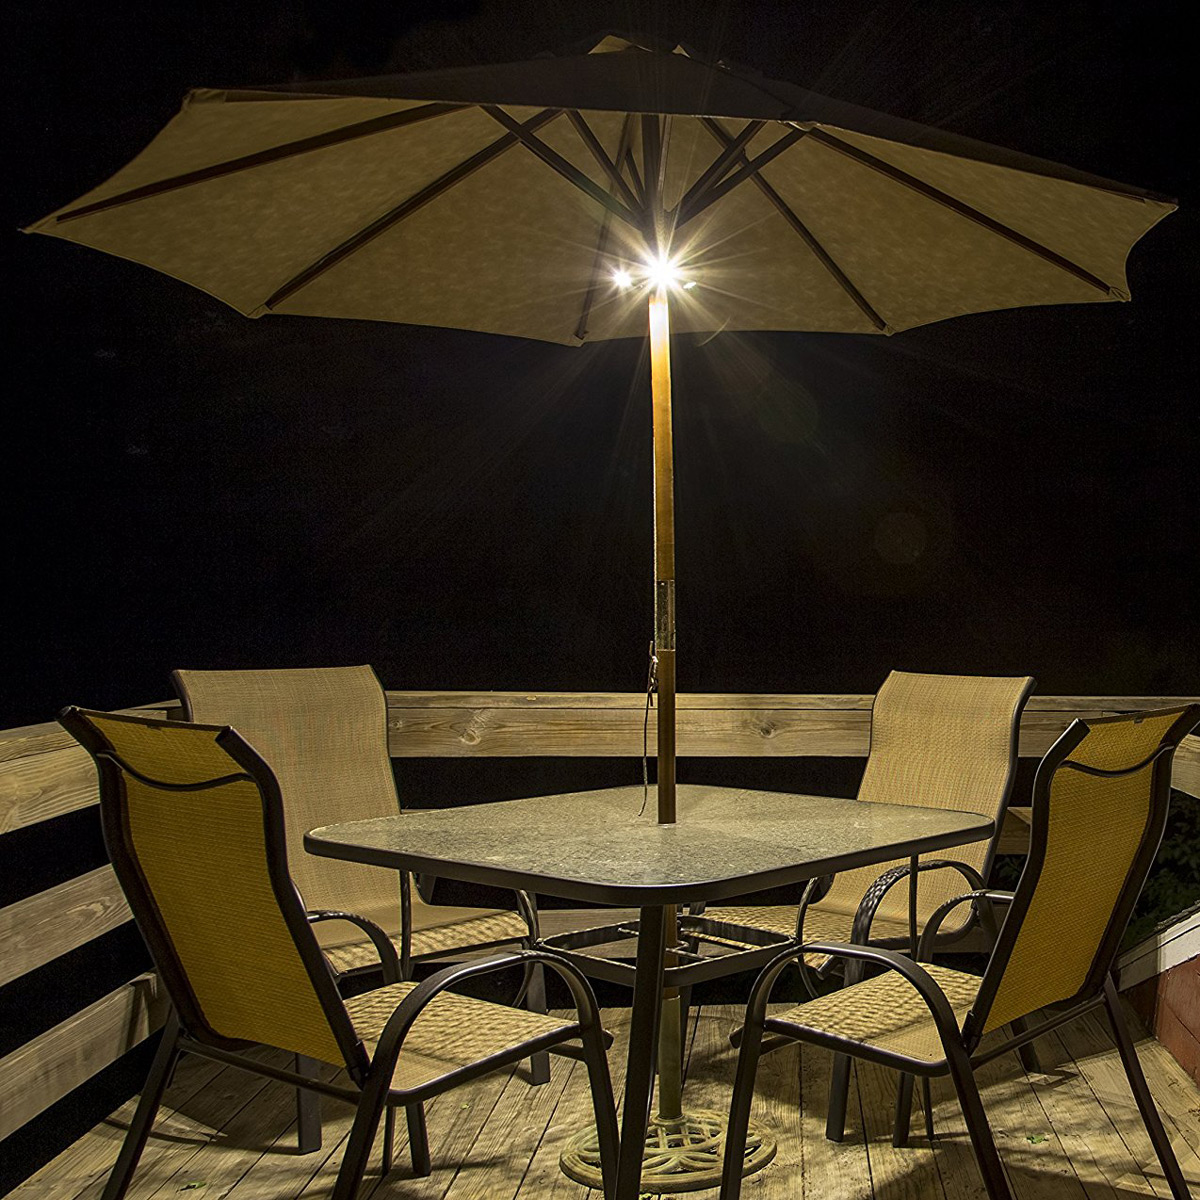 Ion Audio Patio Mate Umbrella Light And Bluetooth Stereo